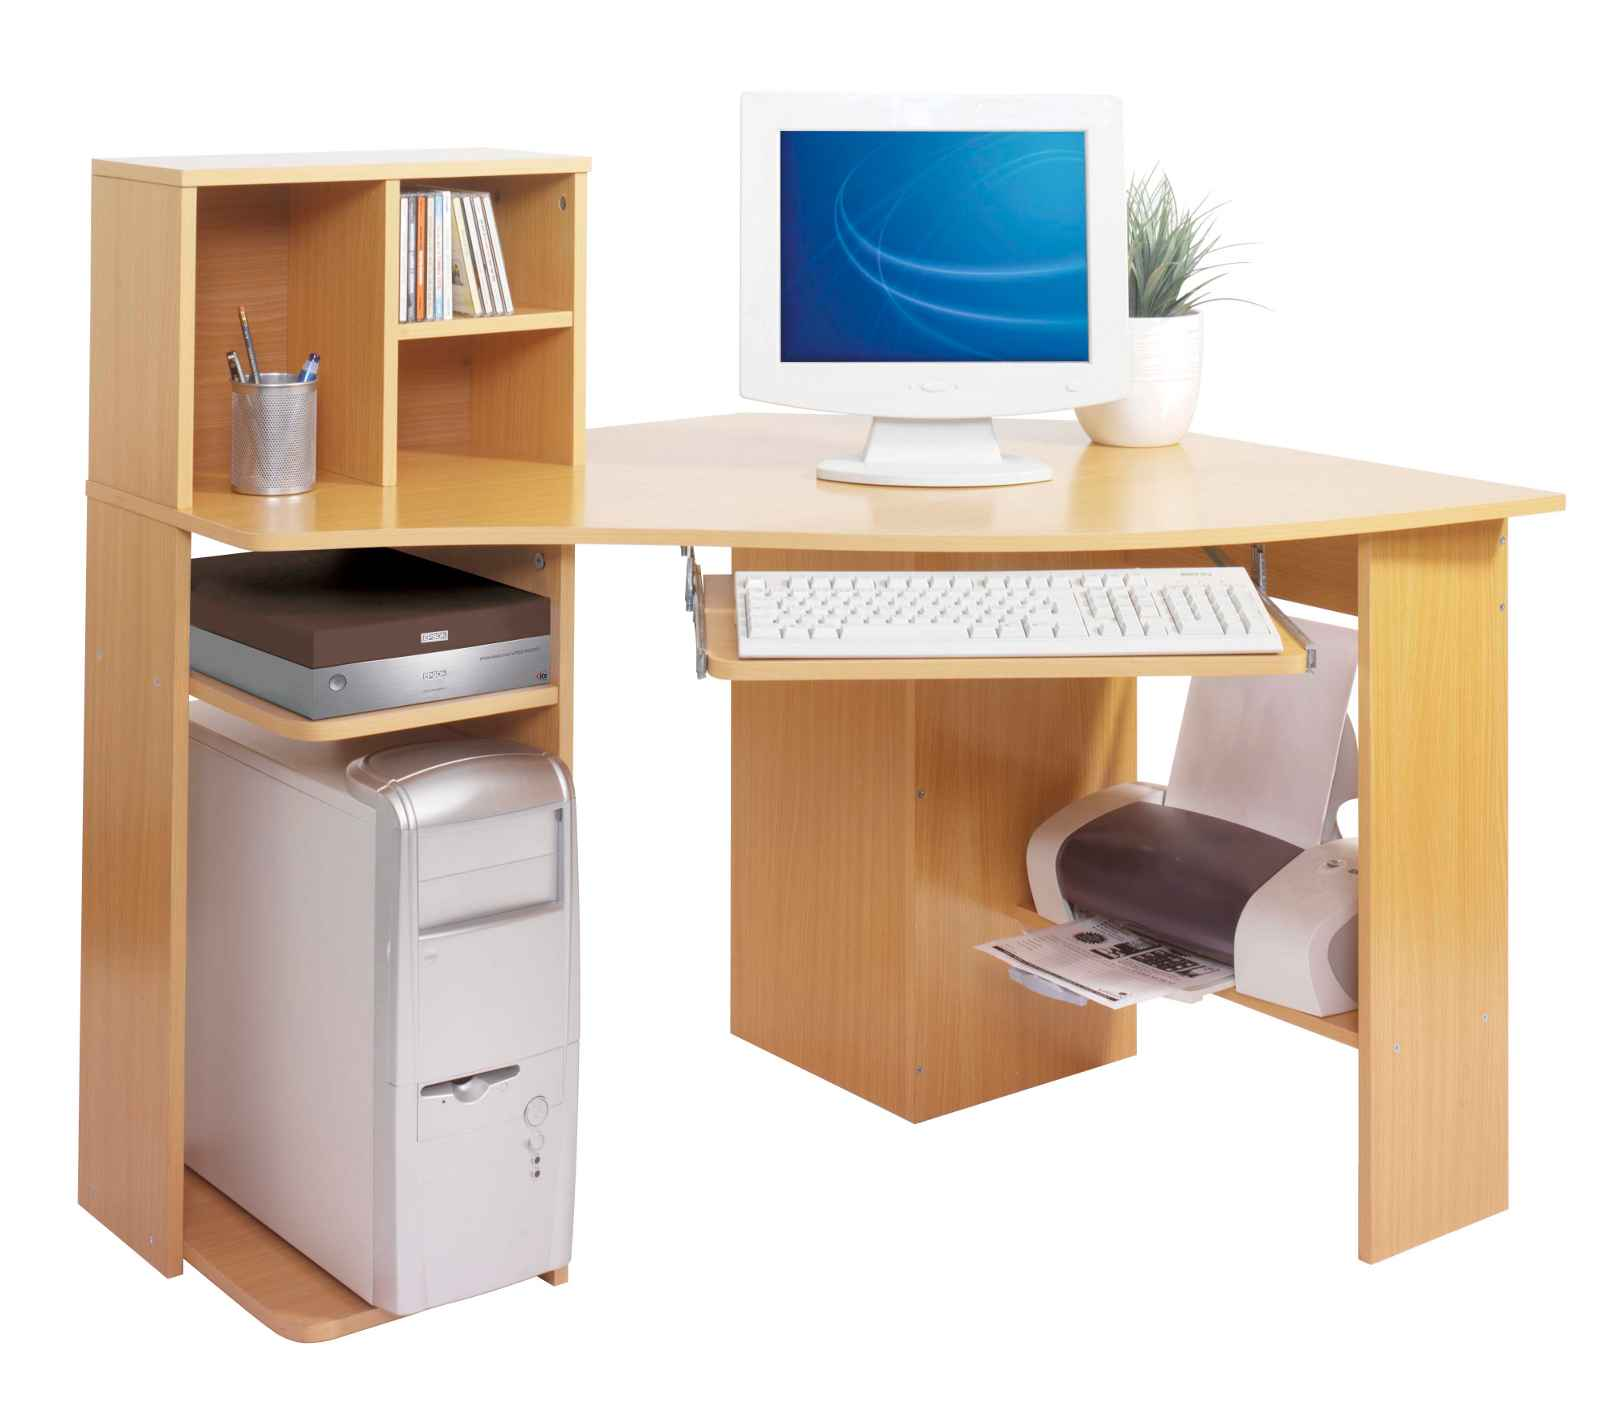 Bargain office furniture market ideas - Office furnitur ...